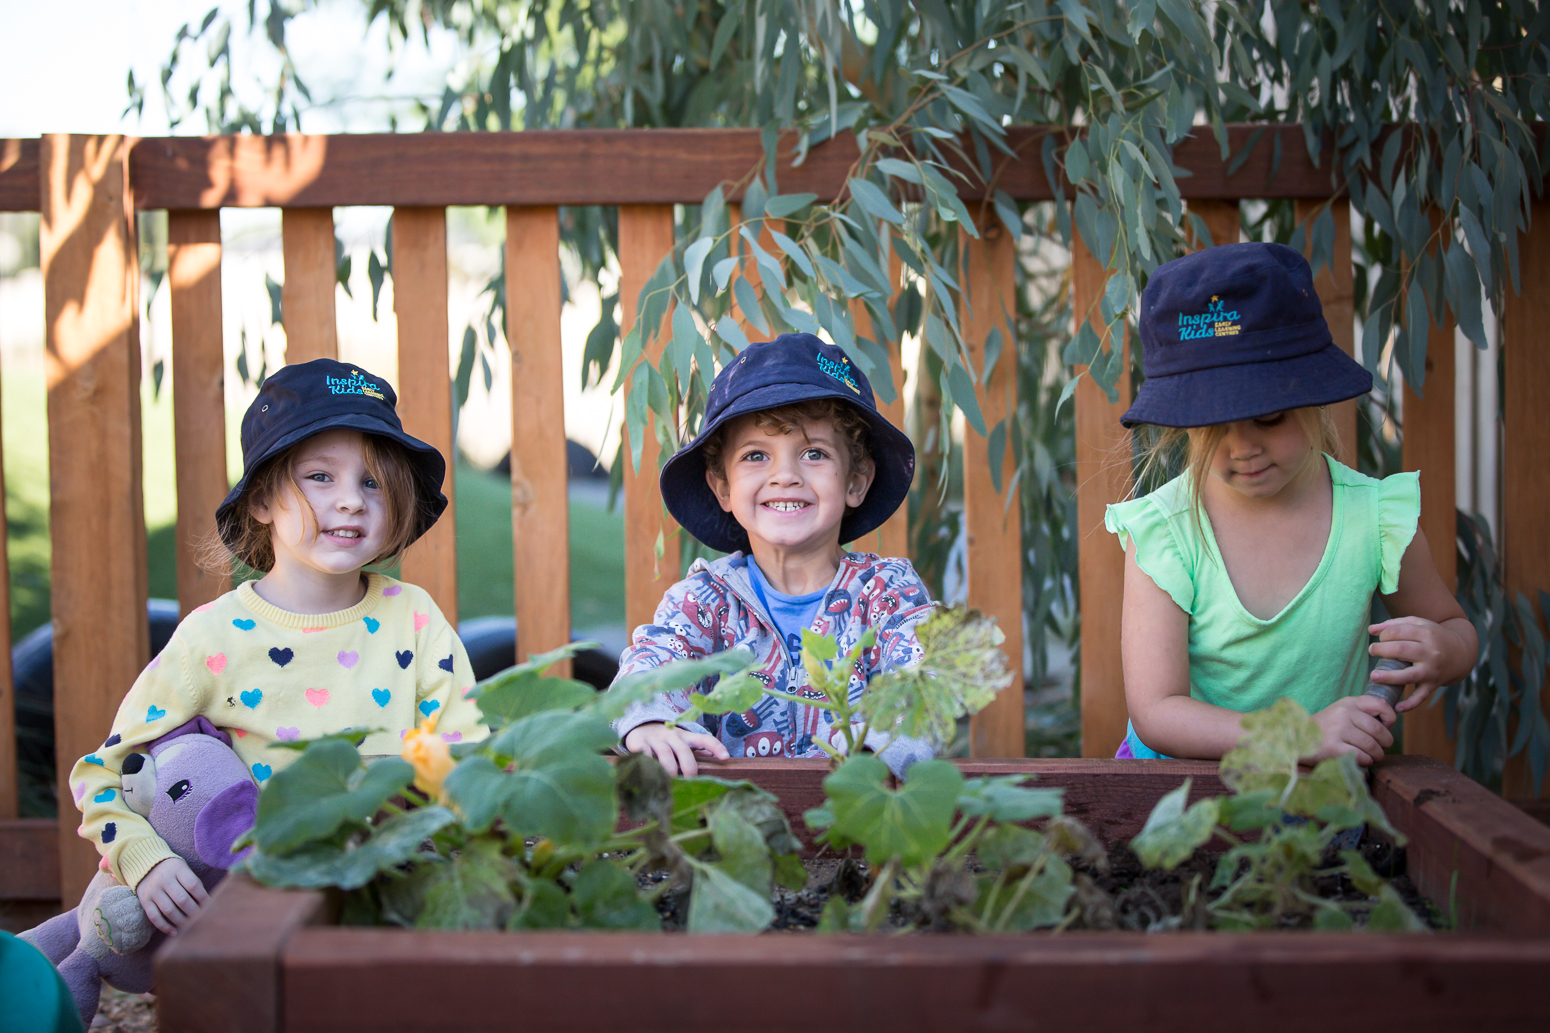 Inspira Kids Garden. Inspire Grow Learn